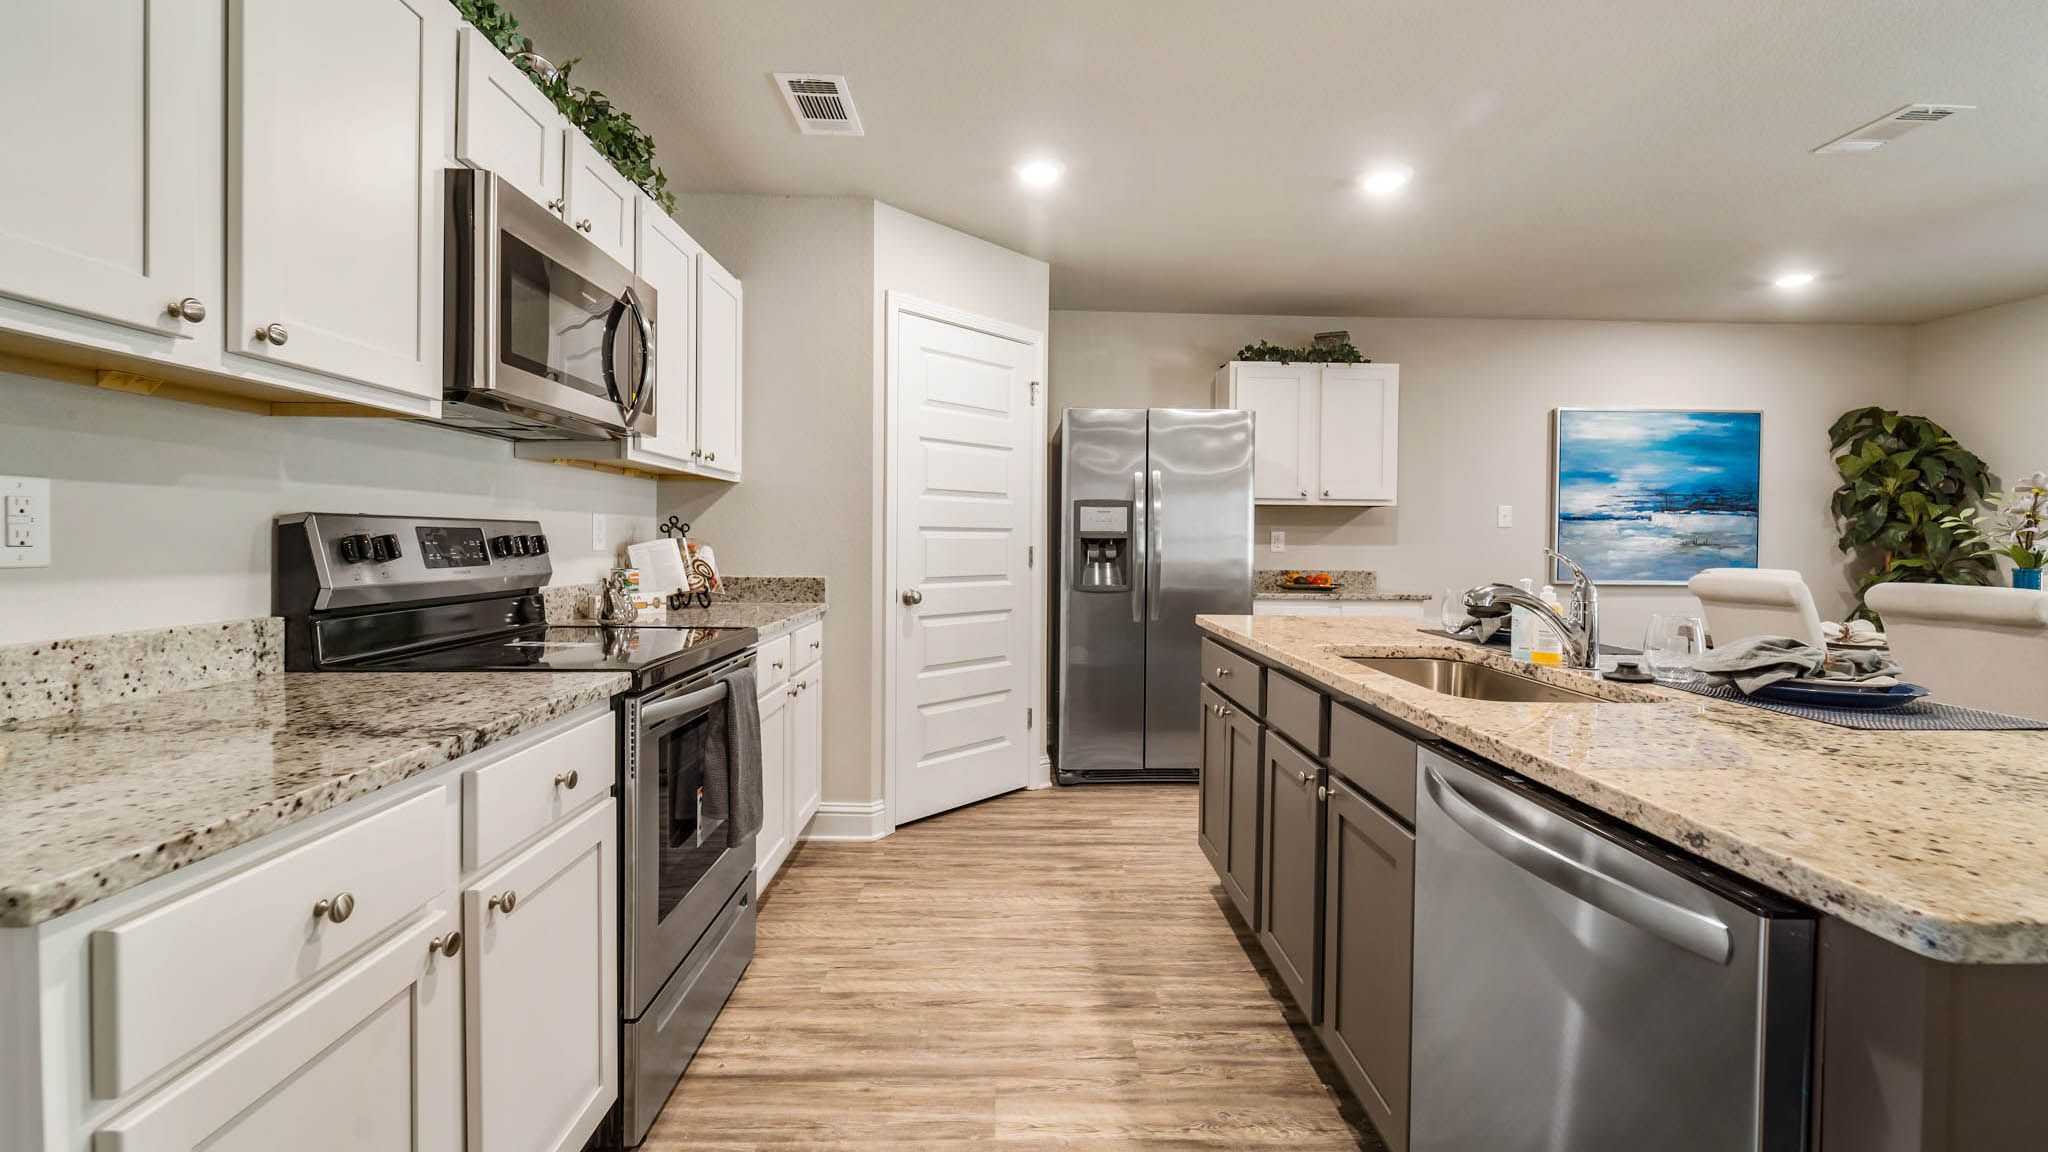 Kitchen featured in The Cali By D.R. Horton in Biloxi, MS